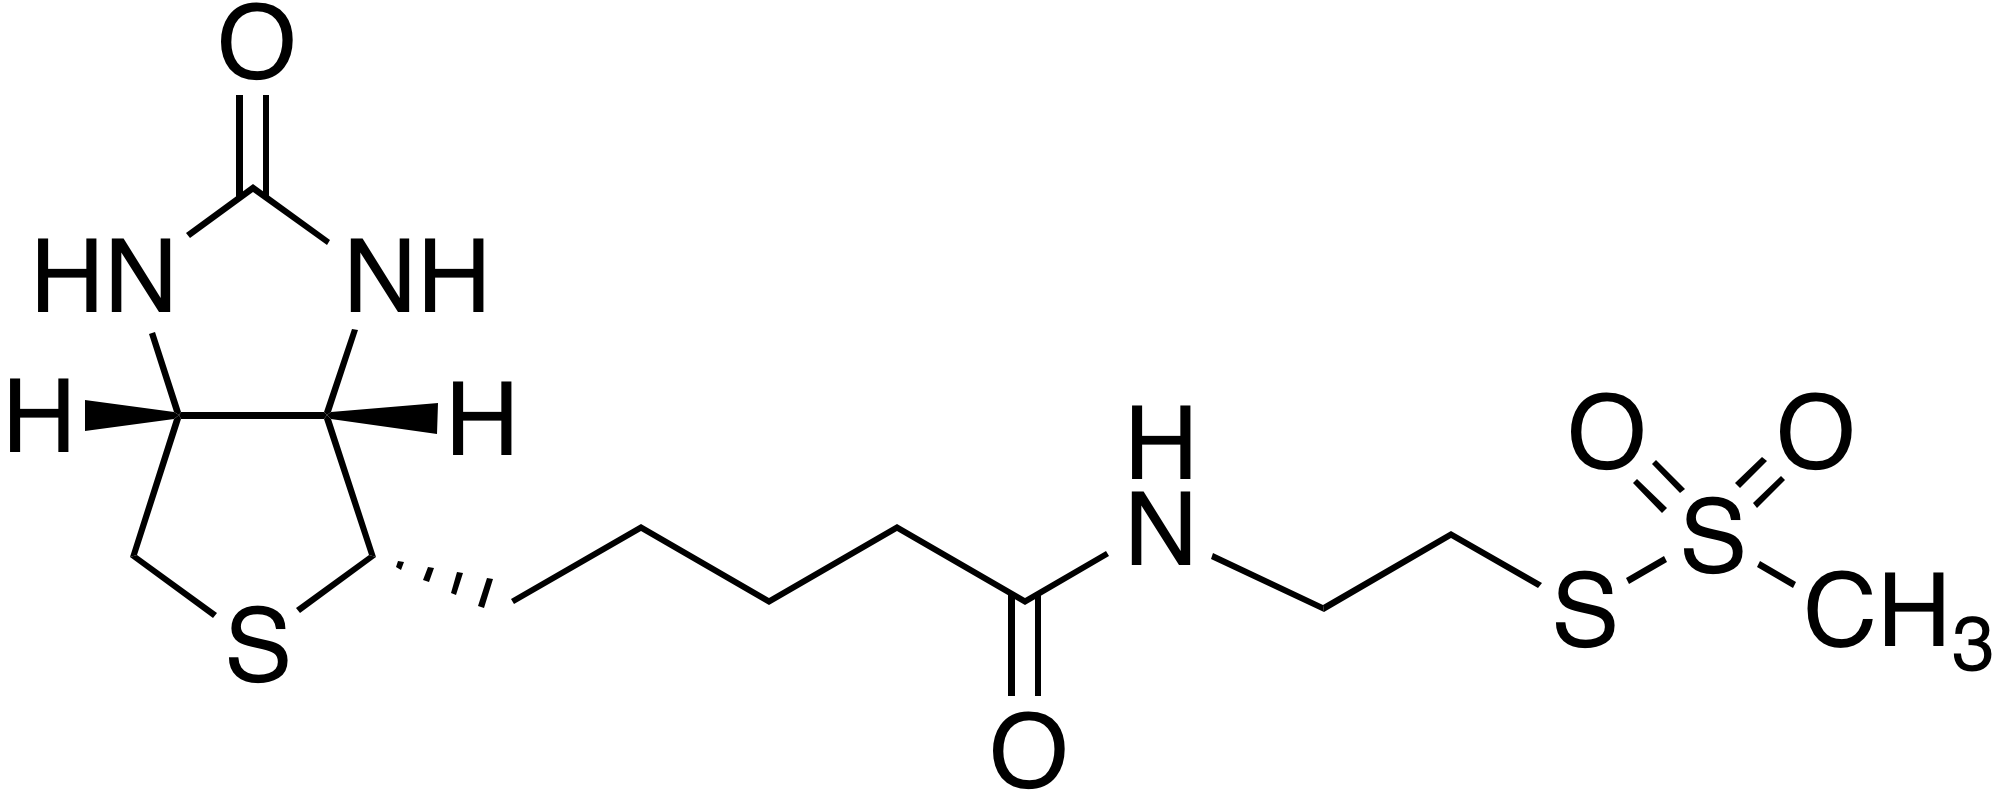 N-Biotinylaminoethyl methanethiosulfonate